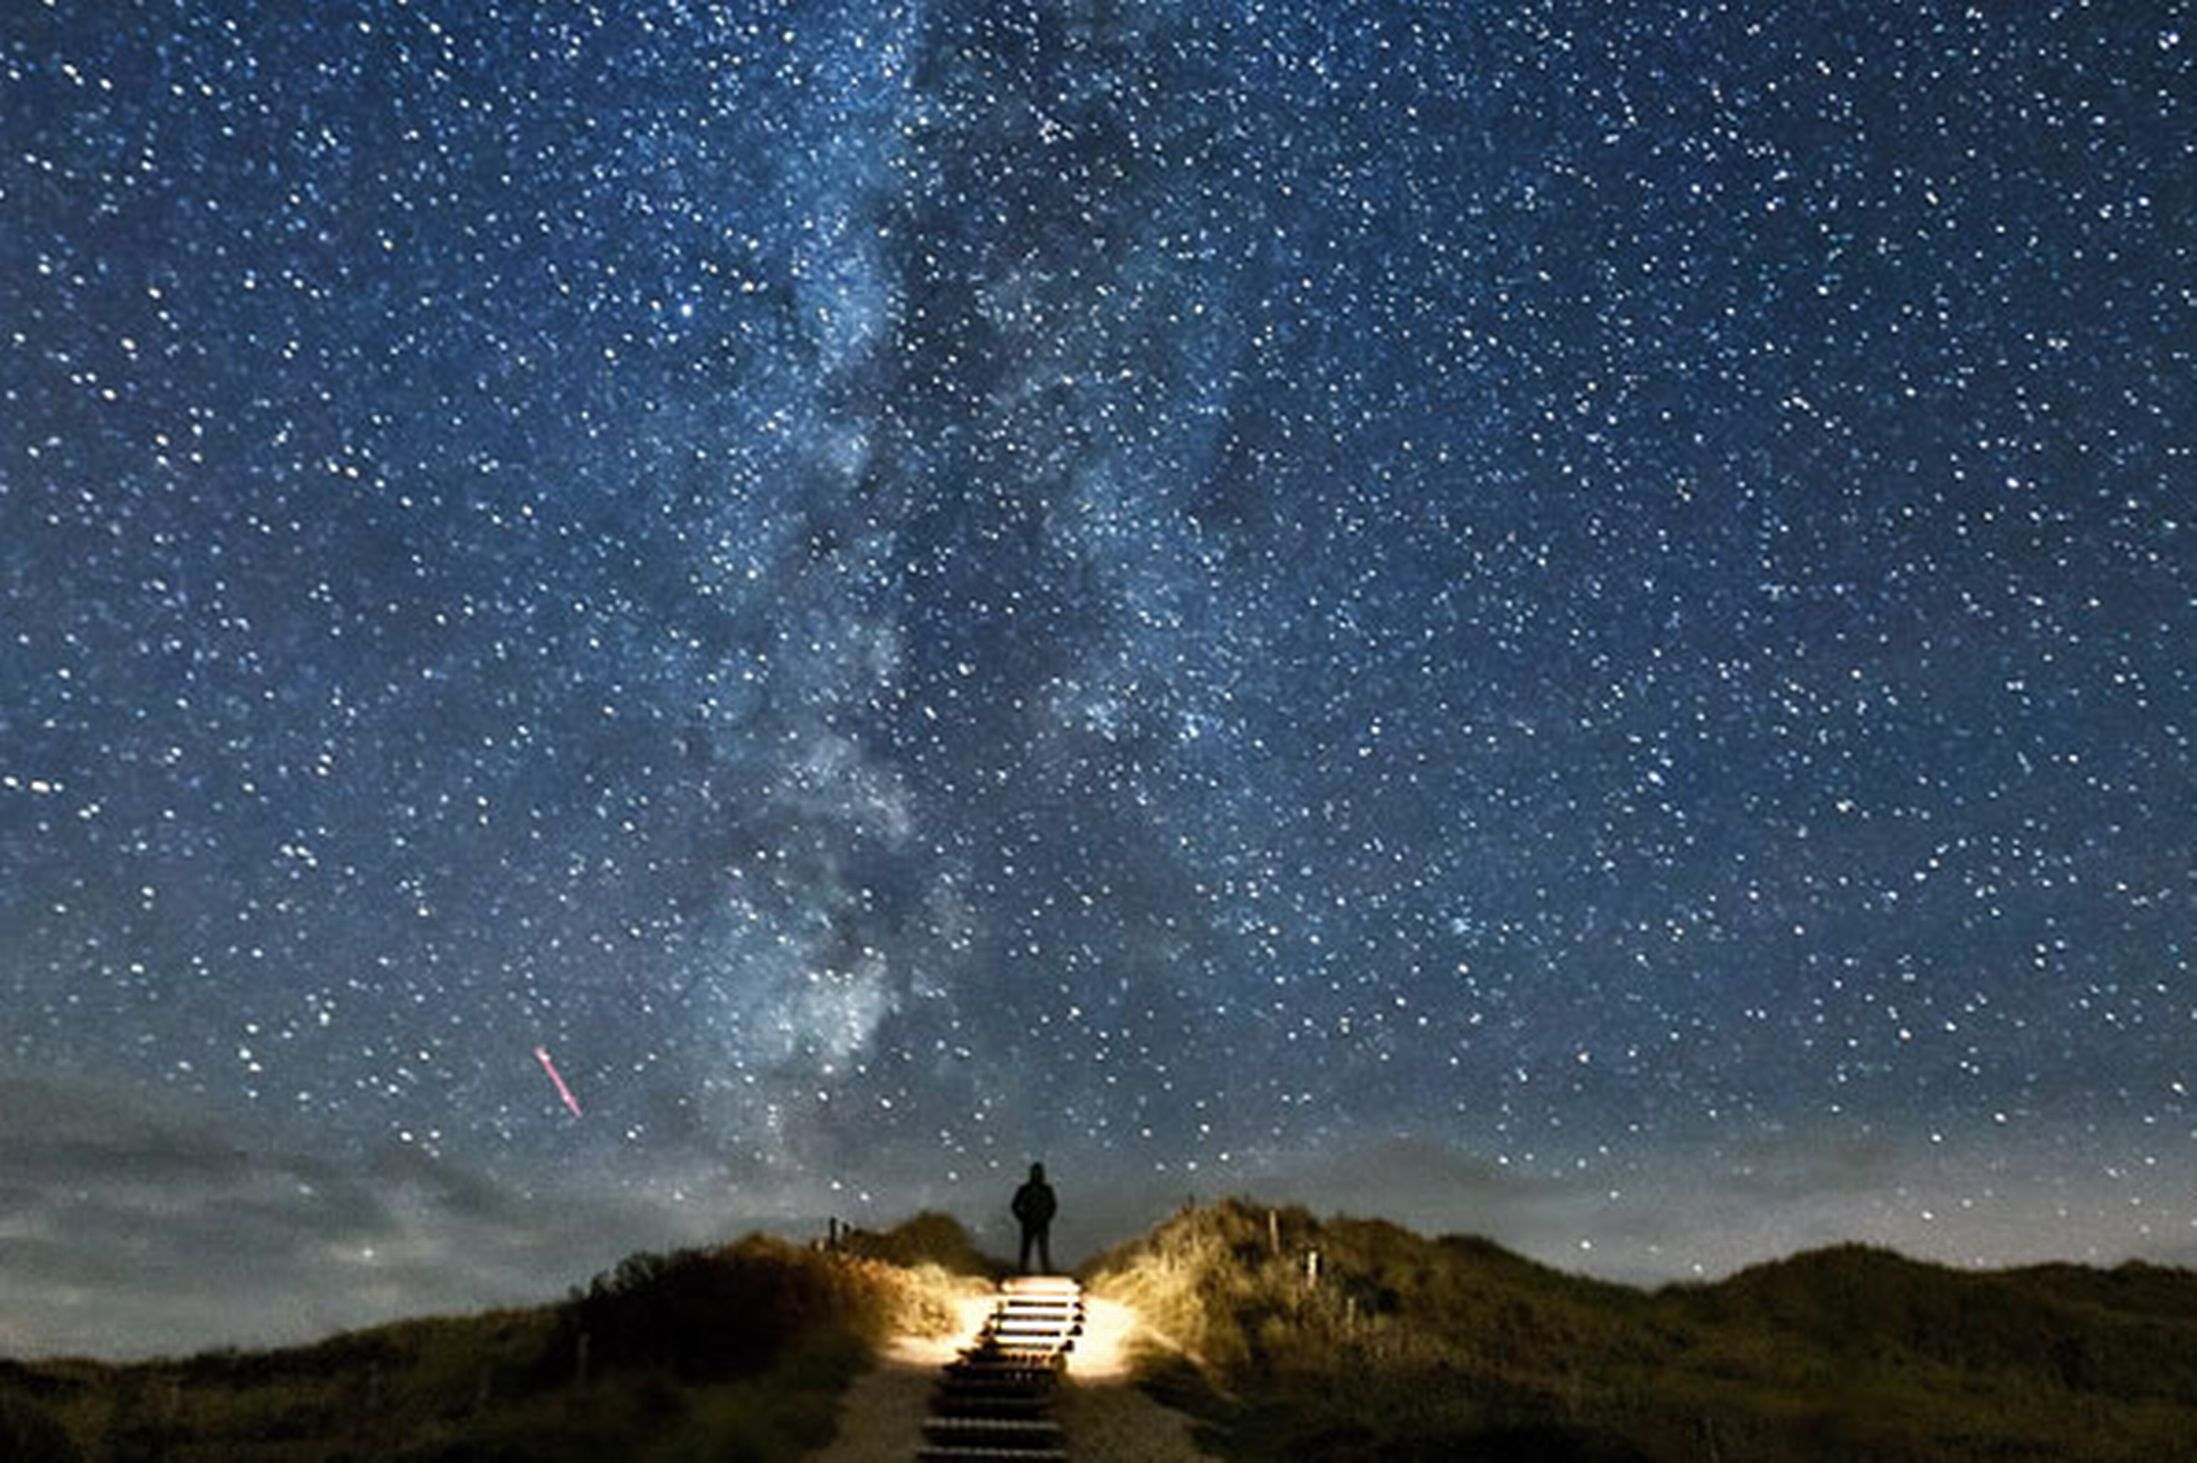 a-sand-dune-apparently-leading-directly-to-the-milky-way-pic-thomas-zimmer-solent-44771320